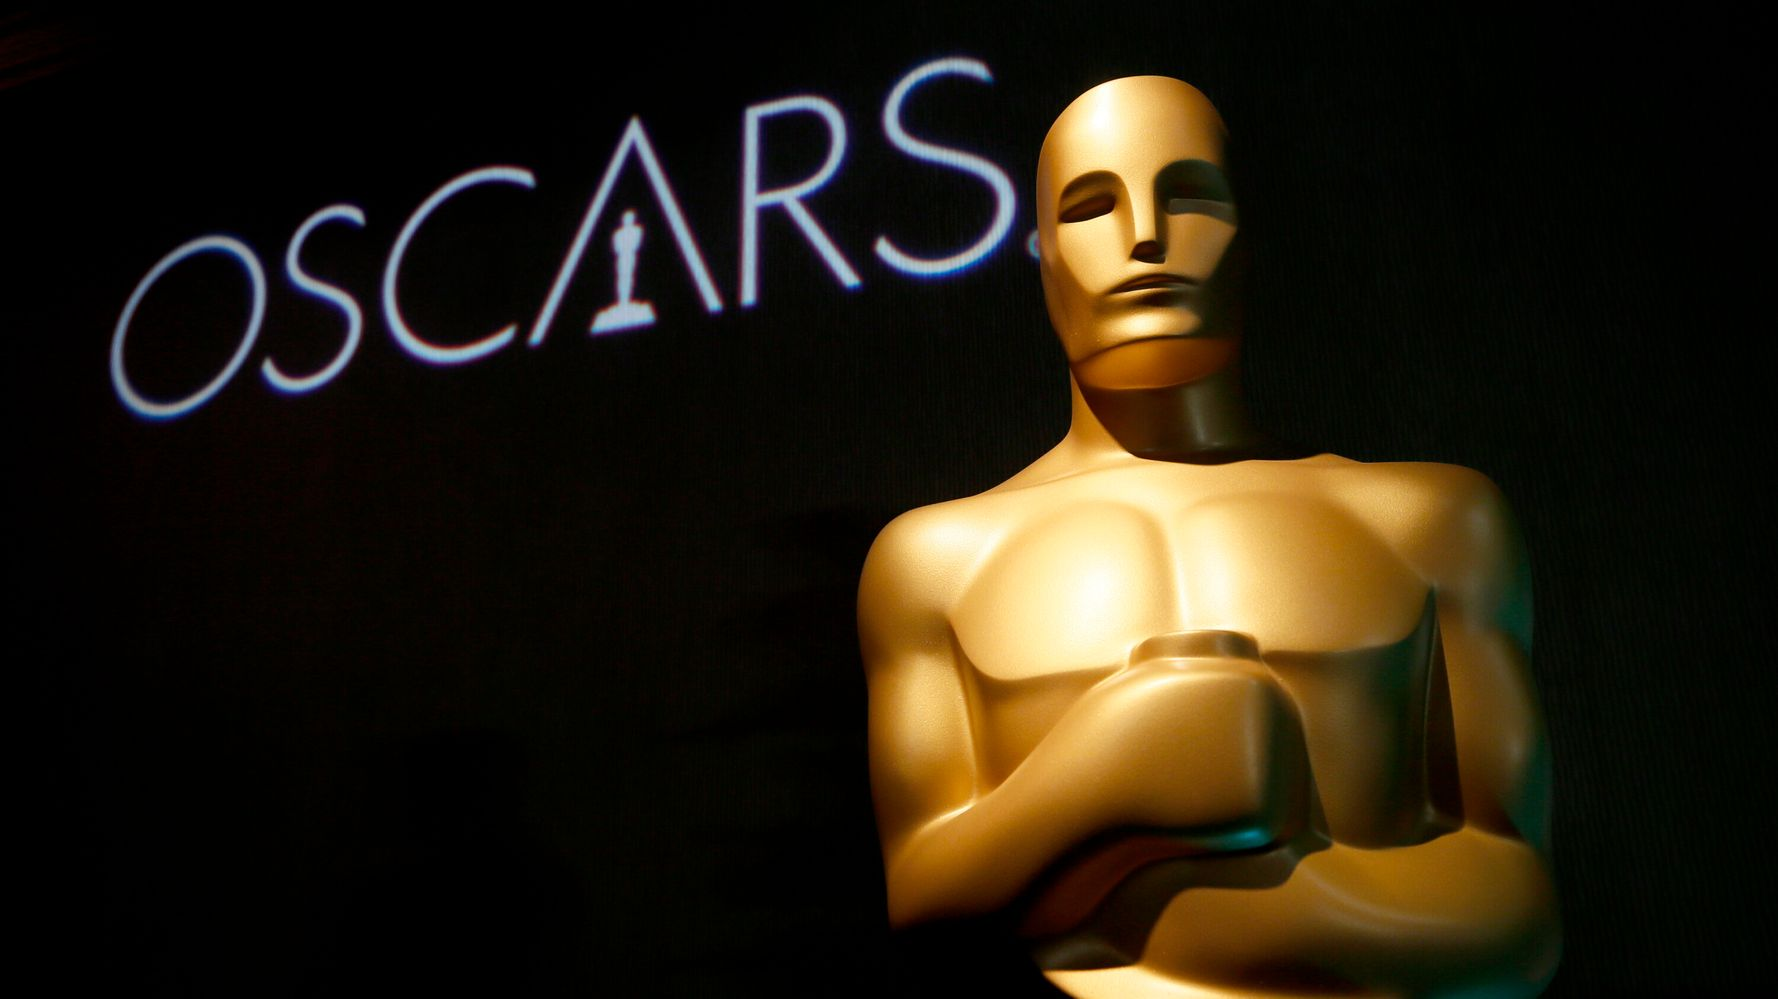 Oscars 2021 Will Reportedly Be Held In Person After Year Of Virtual Award Shows